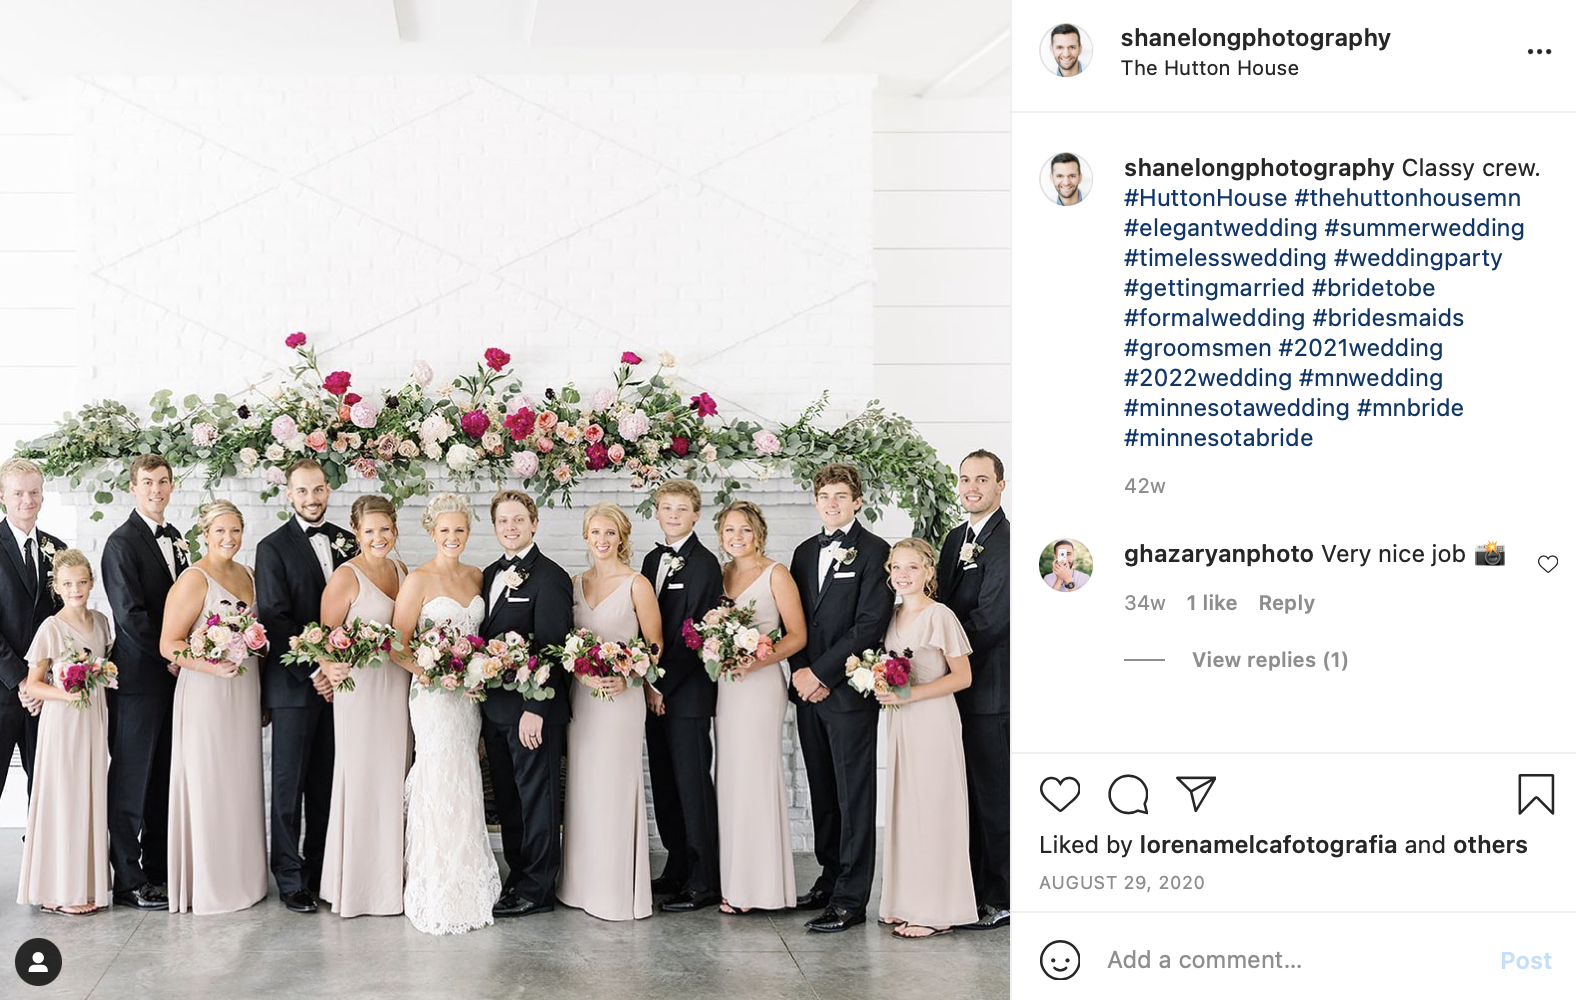 bridal party with bridesmaids and groomsmen